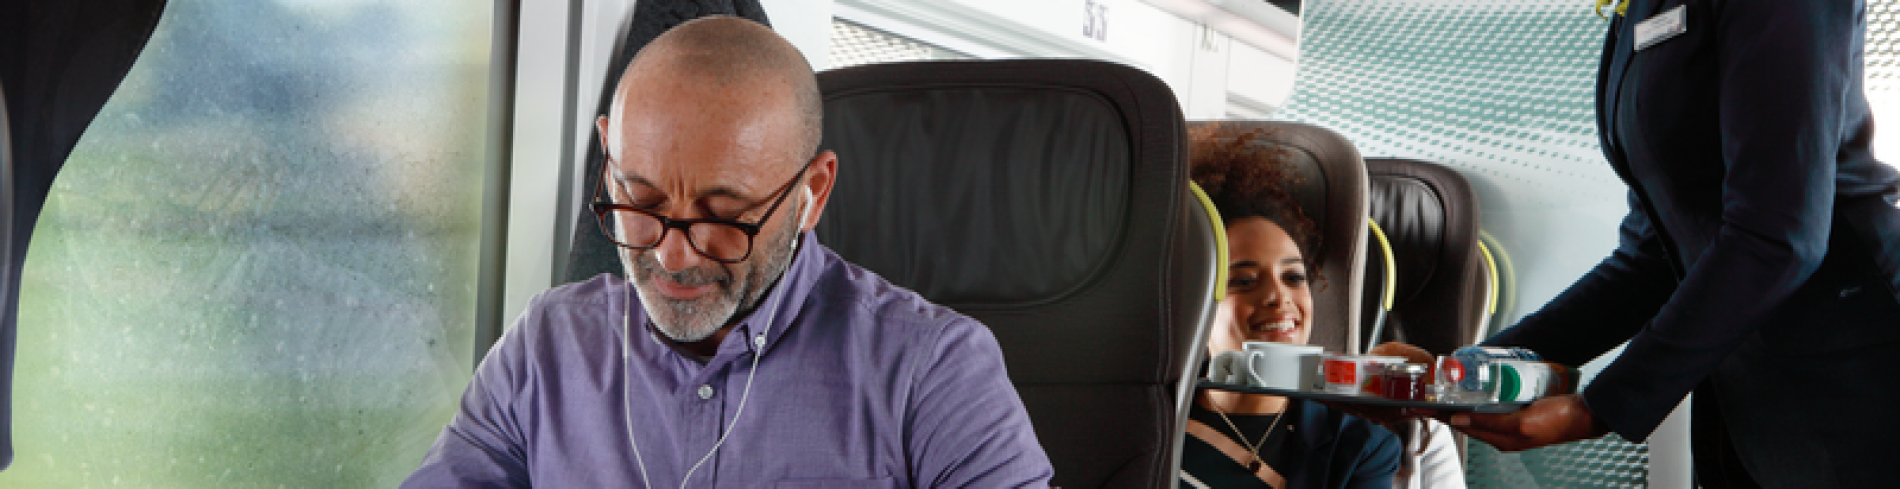 Be productive on the train with our onboard wi-fi